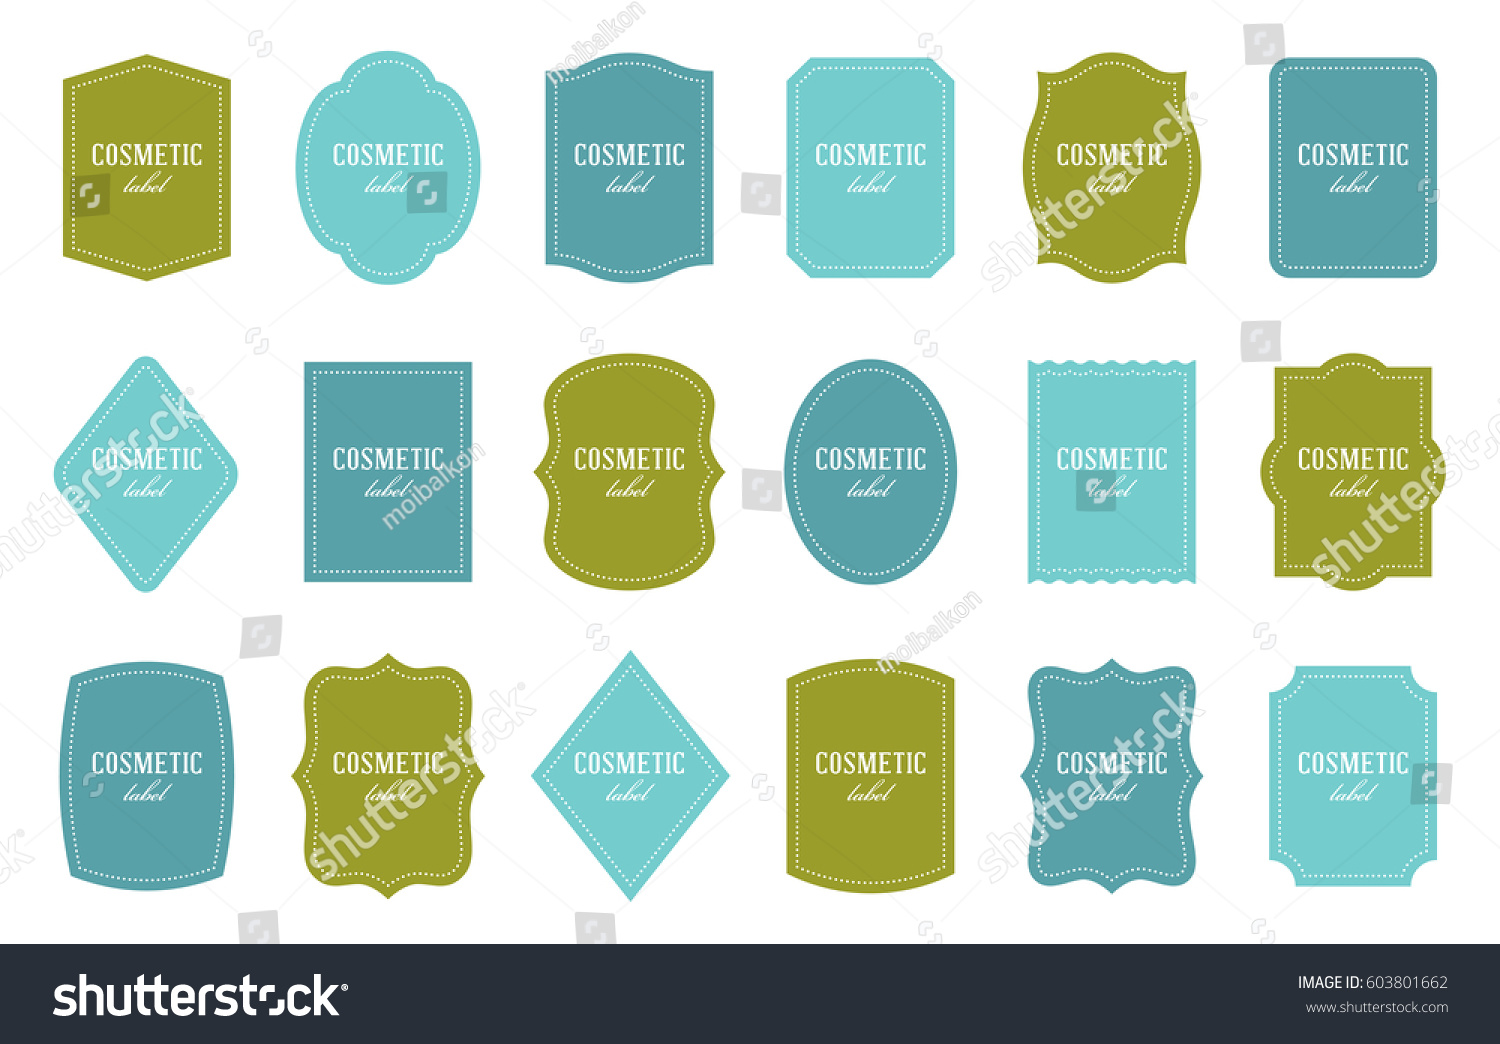 Set Product Label Templates Different Shapes Stock Vector .